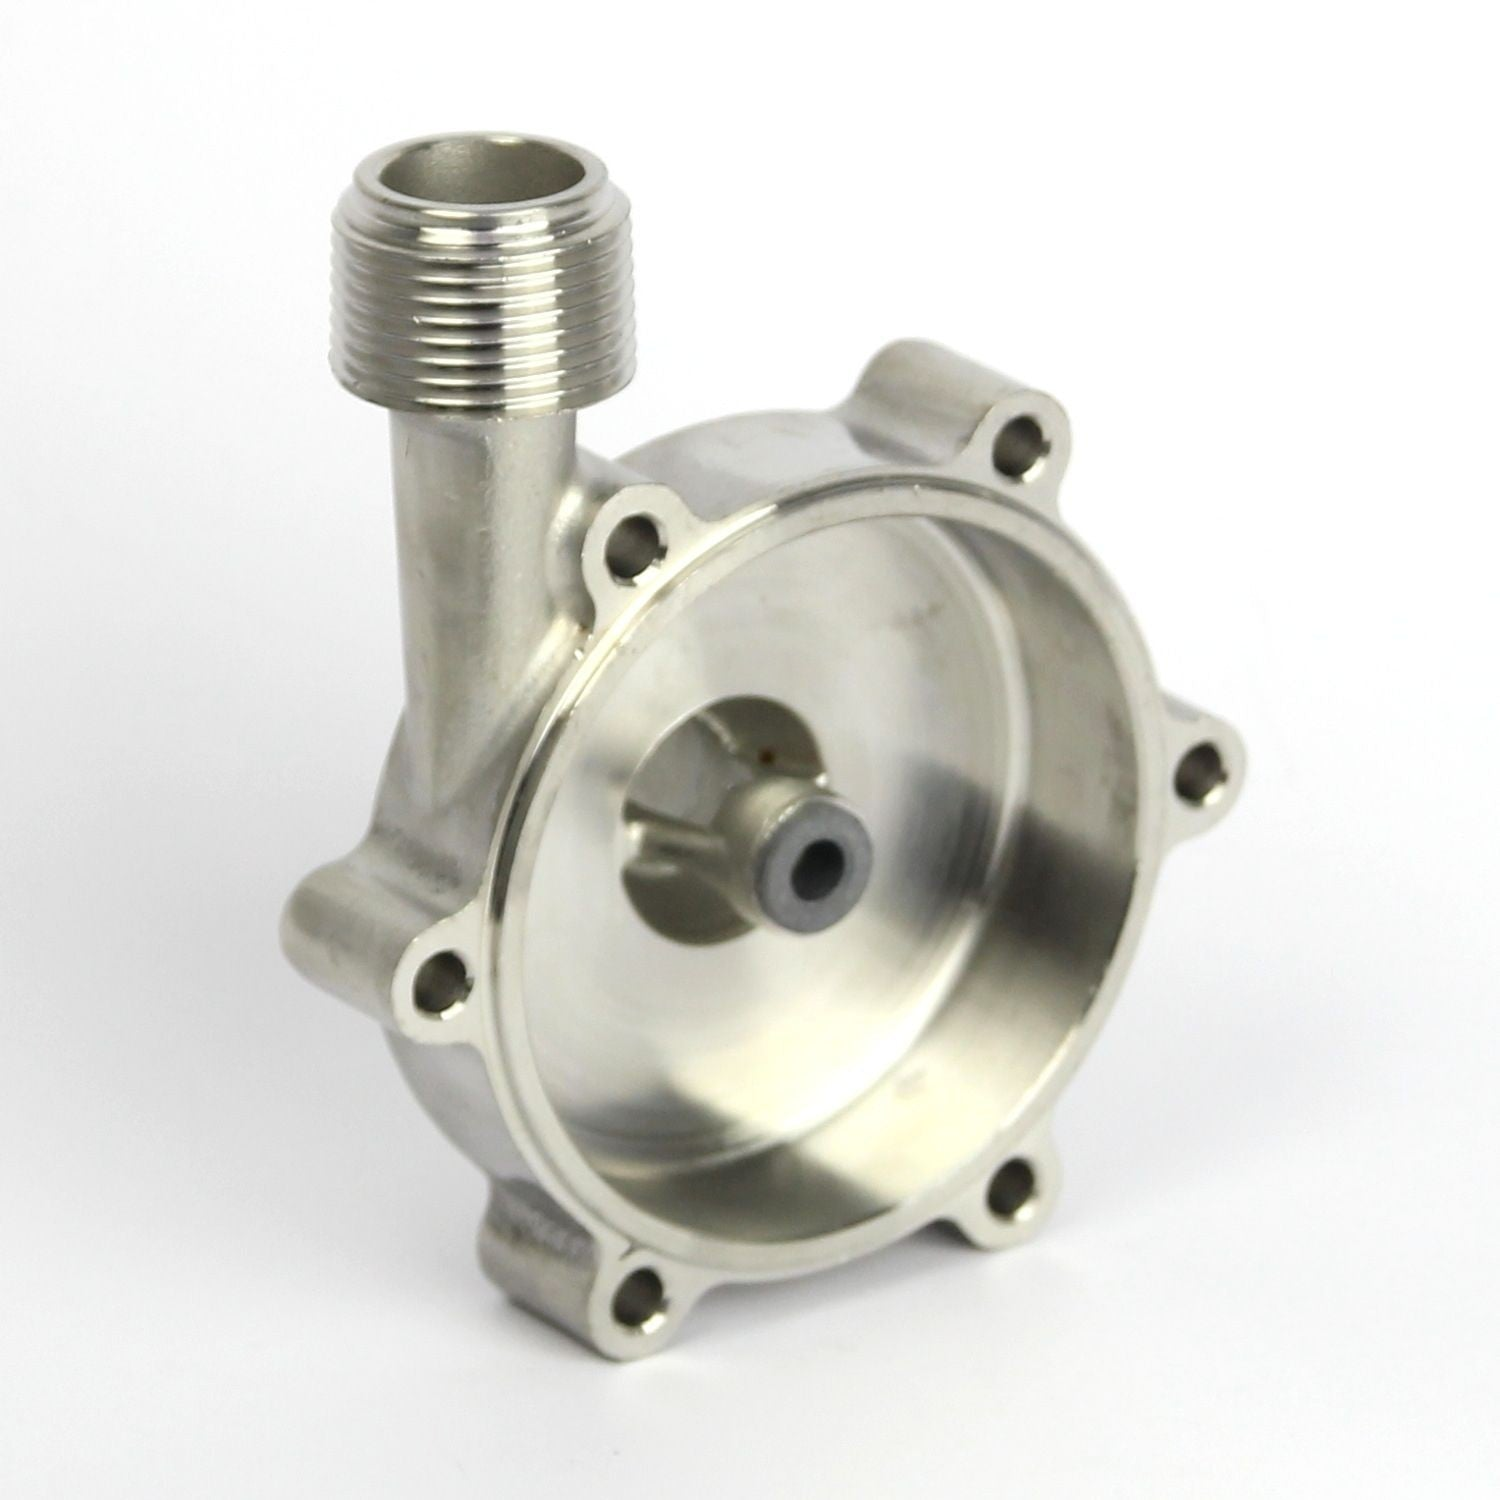 Pump Head - Stainless for MKII Pump 25w